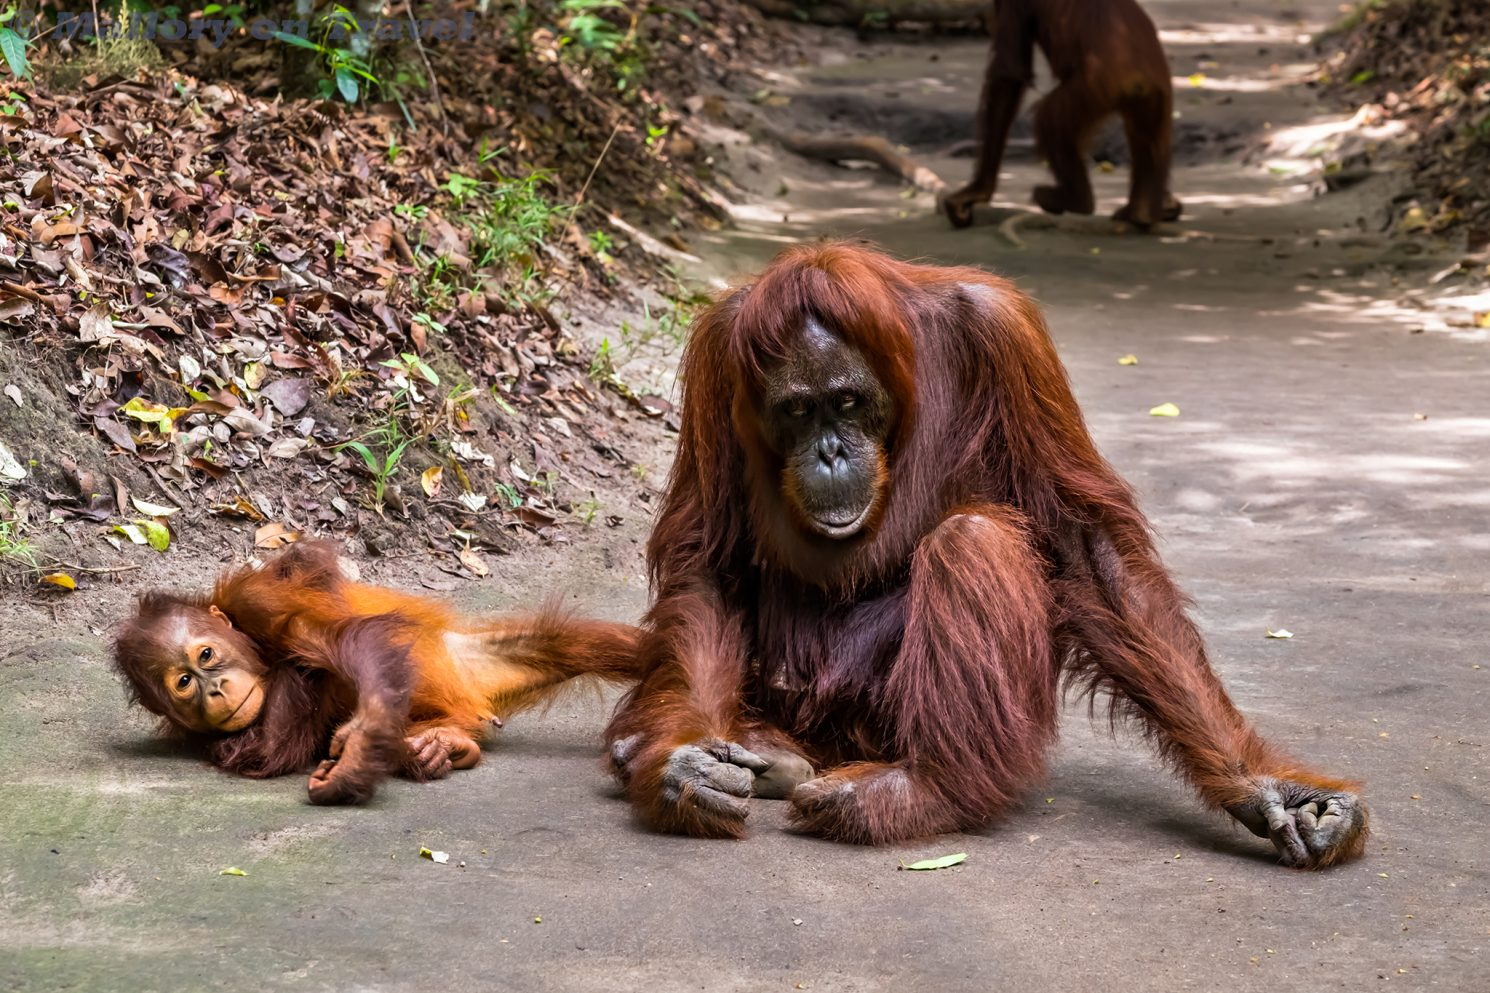 Orangutans at Camp Leakey in the Tanjung Puting National Park of Kalimantan on the Indonesian island of Borneo on Mallory on Travel adventure travel, photography, travel Iain Mallory_Indo-1-228